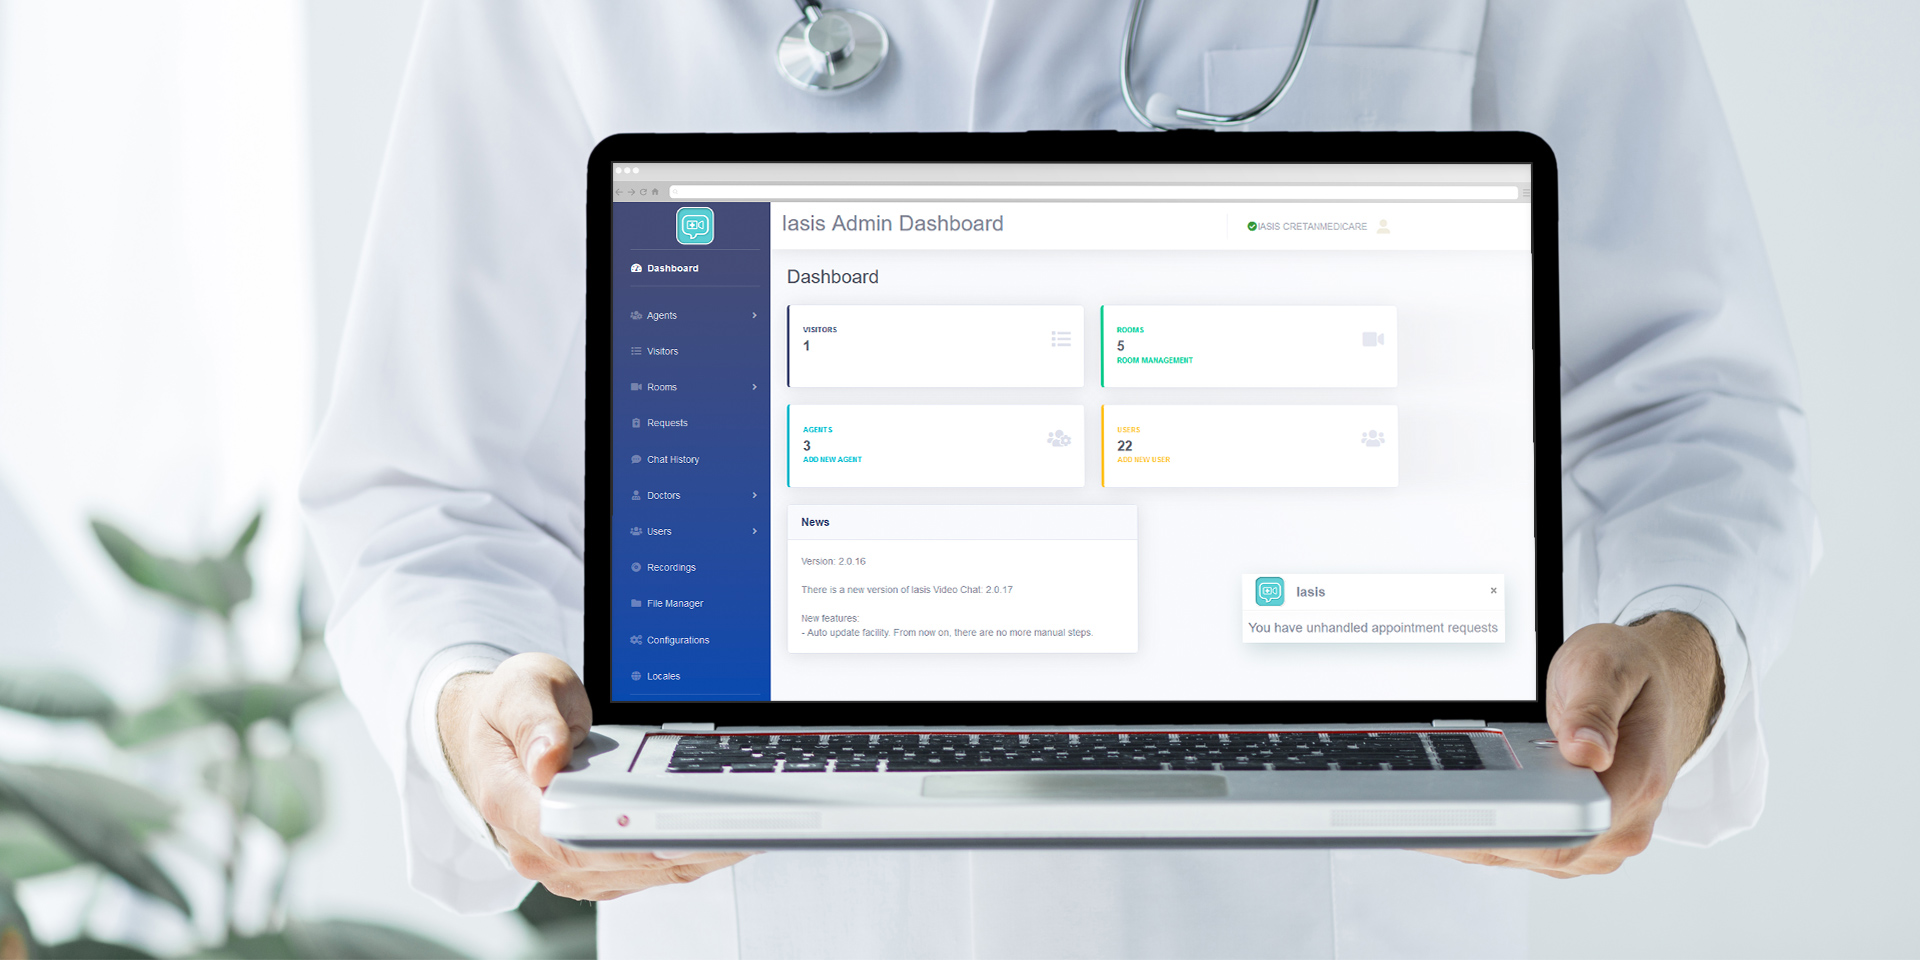 IASIS-live-talk-with-a-doctor-dashboard